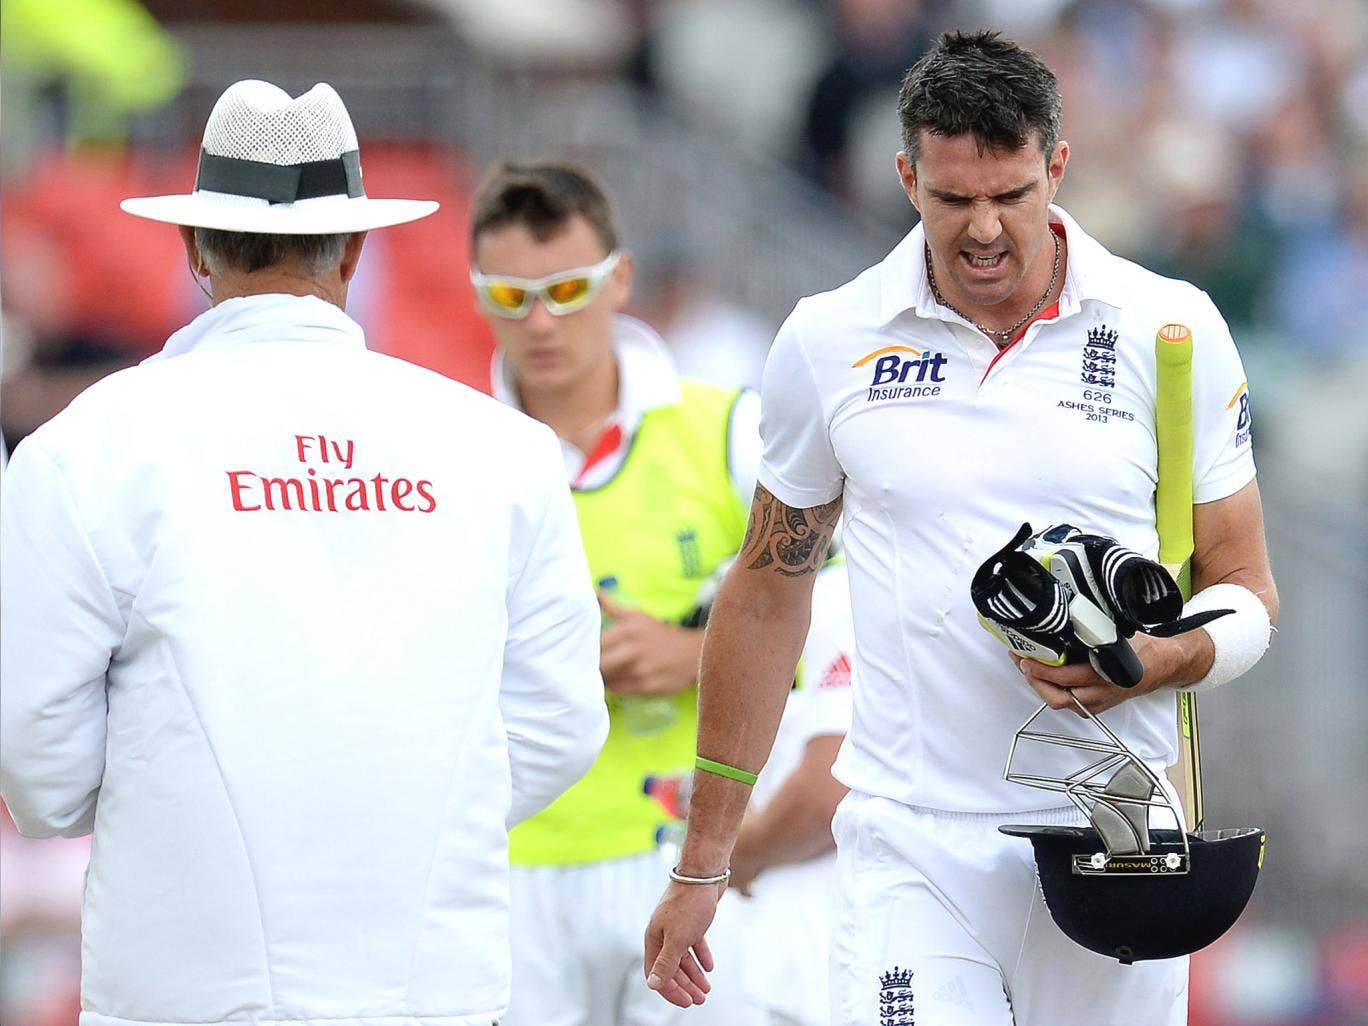 Kevin Pietersen shows his anger after the review decision at Old Trafford